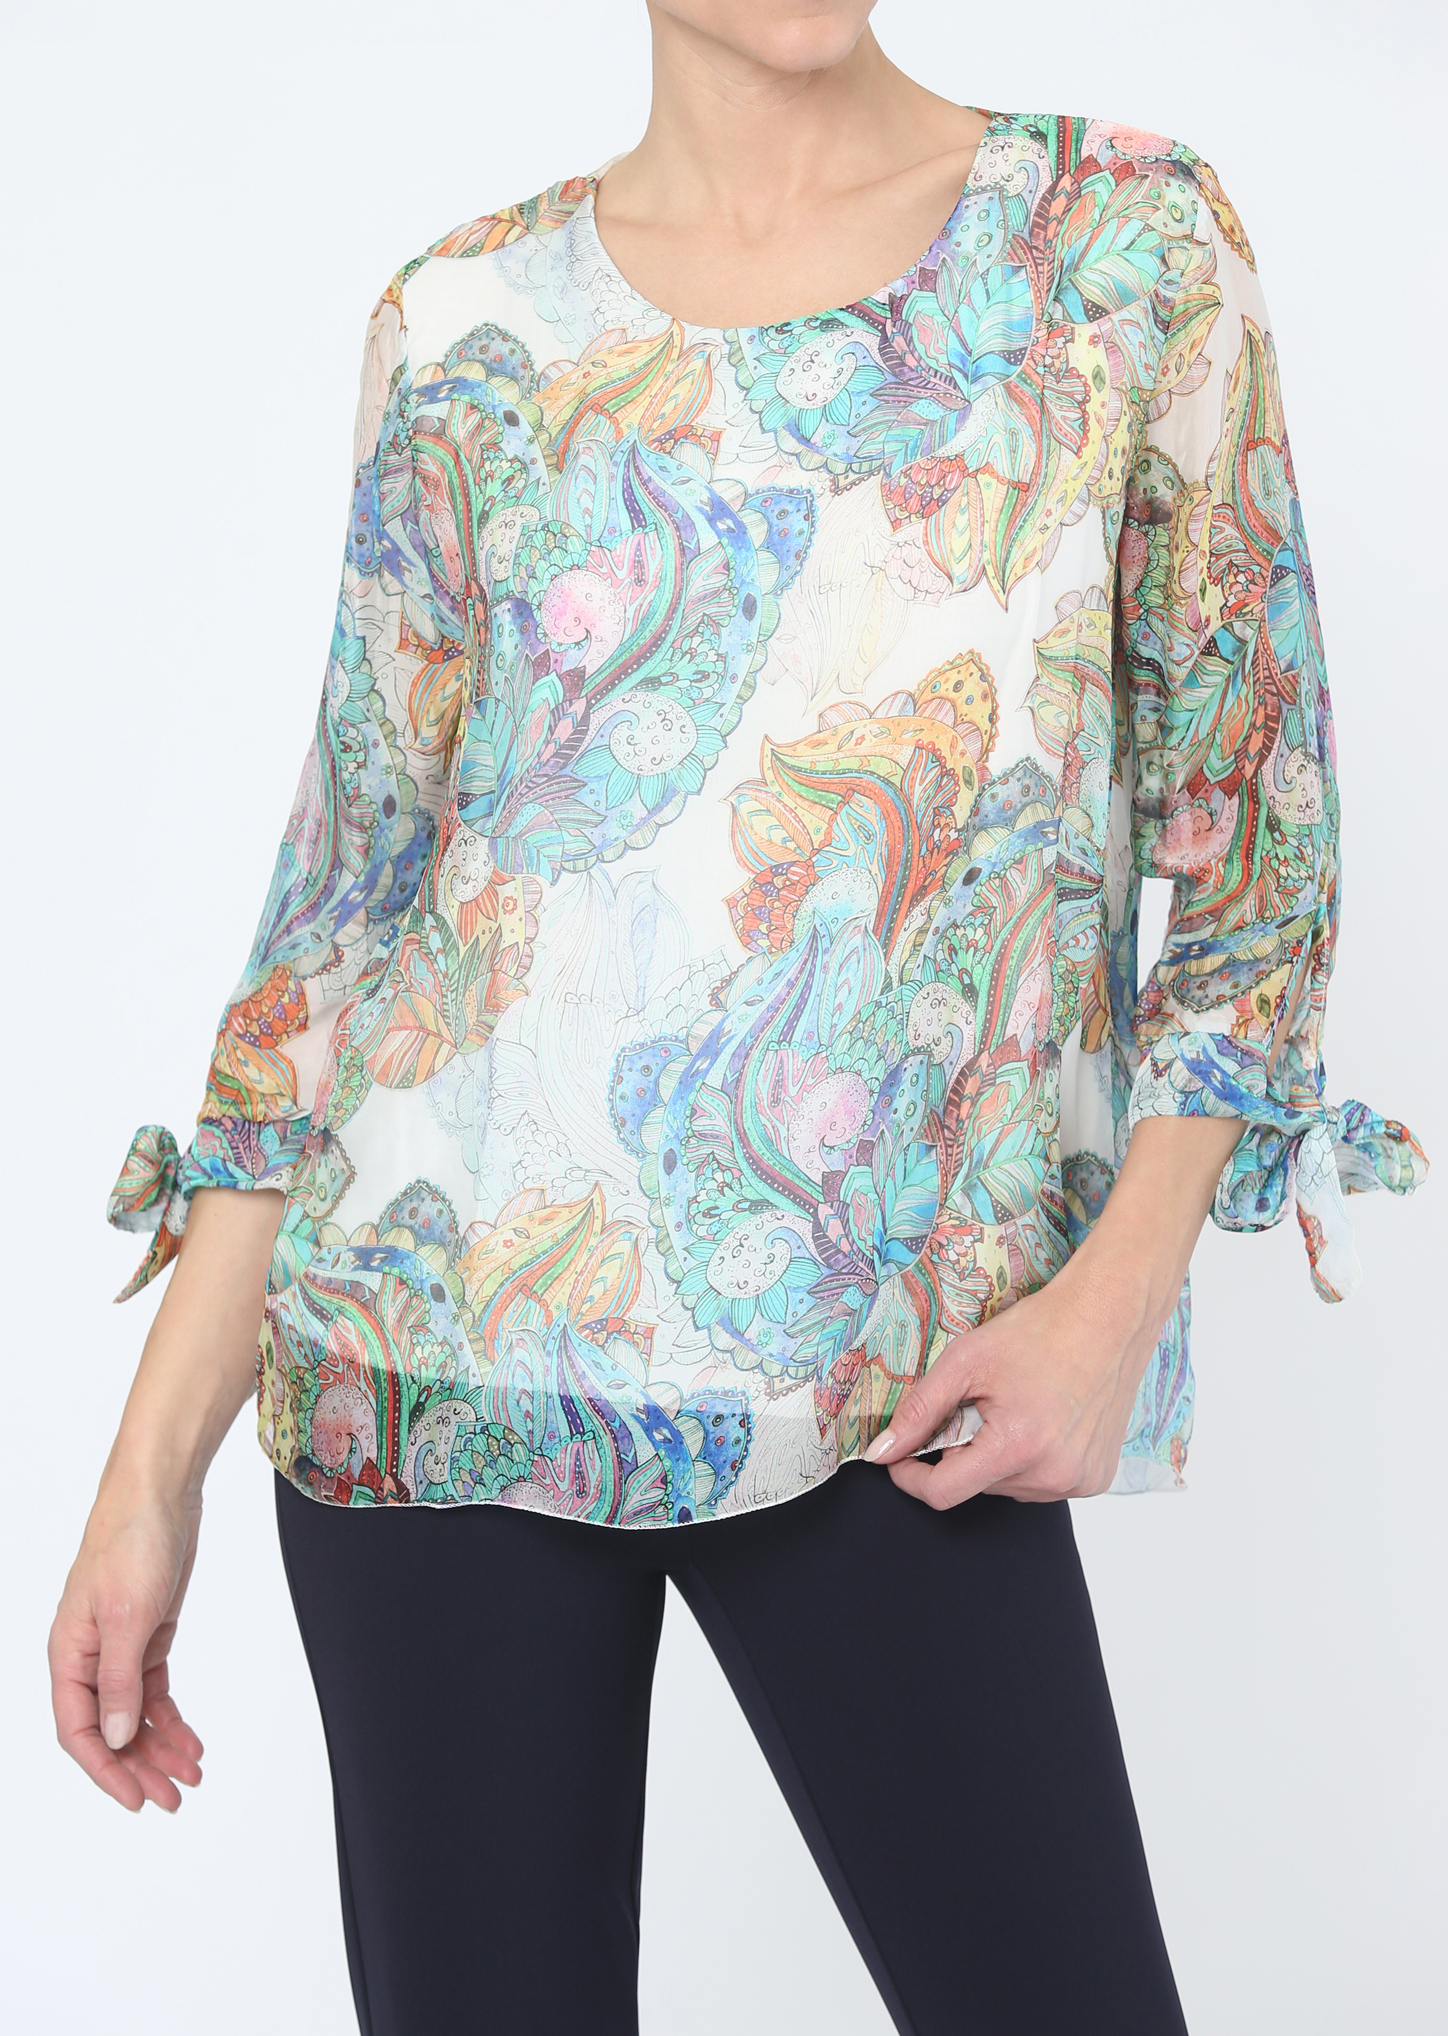 Lisette L. Blouse Top Style 659147 Aurora Silk Color Multi